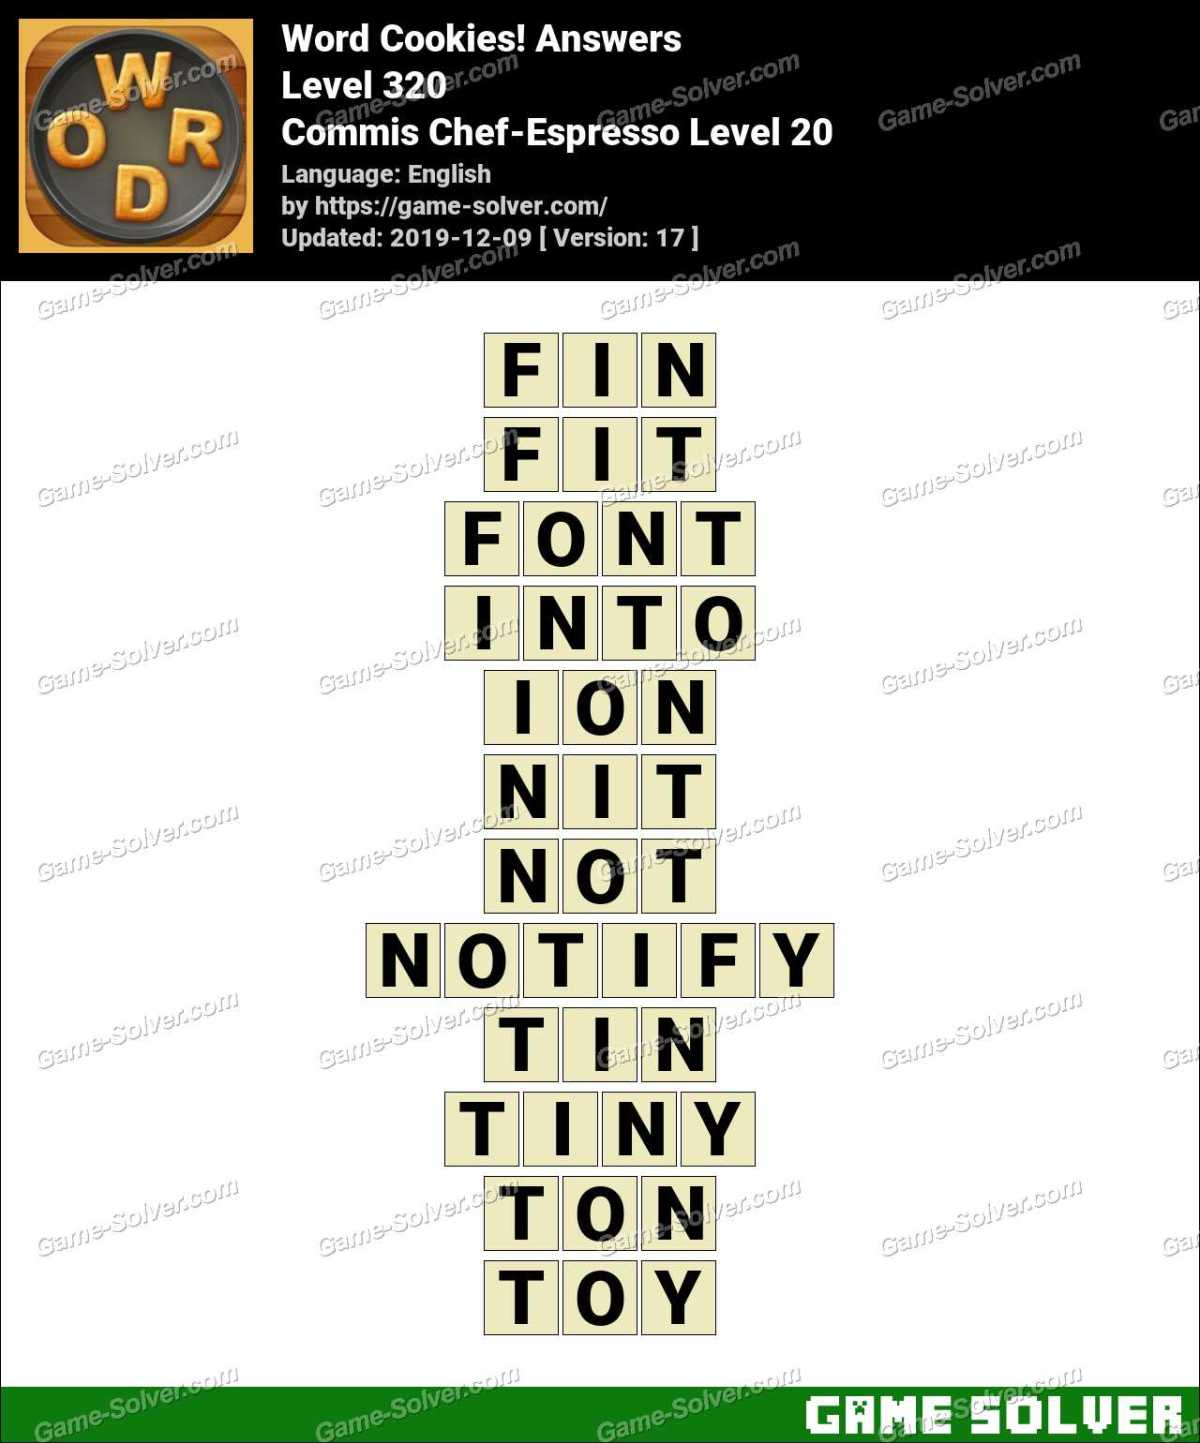 Word Cookies Commis Chef-Espresso Level 20 Answers